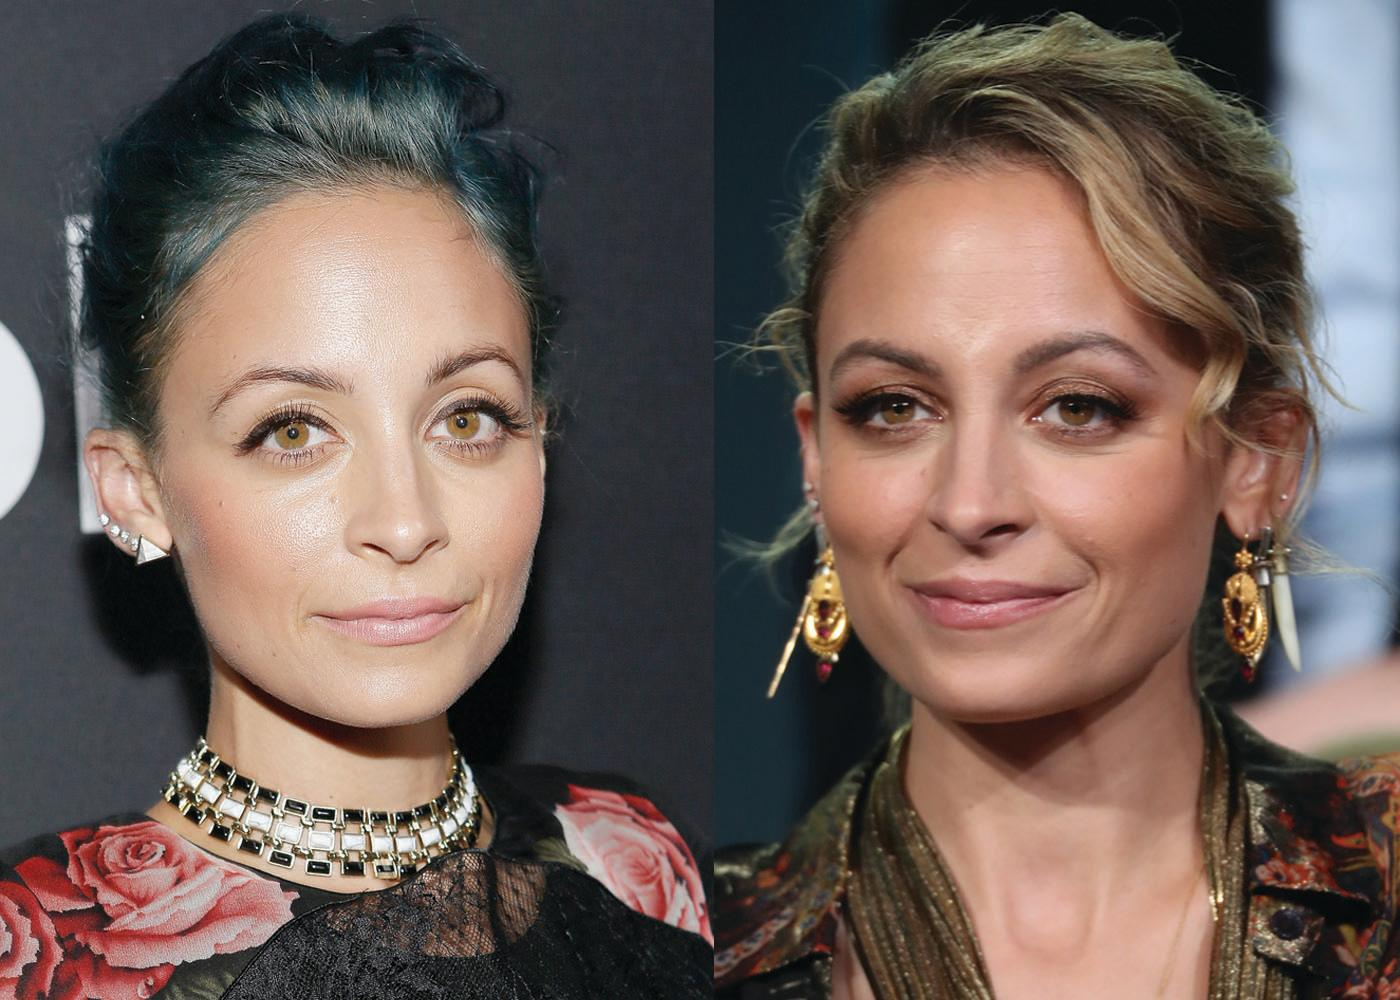 After experimenting with dark green hair dye, Nicole Richie is now back to a natural-looking dirty blond. (Photo: Getty Images)